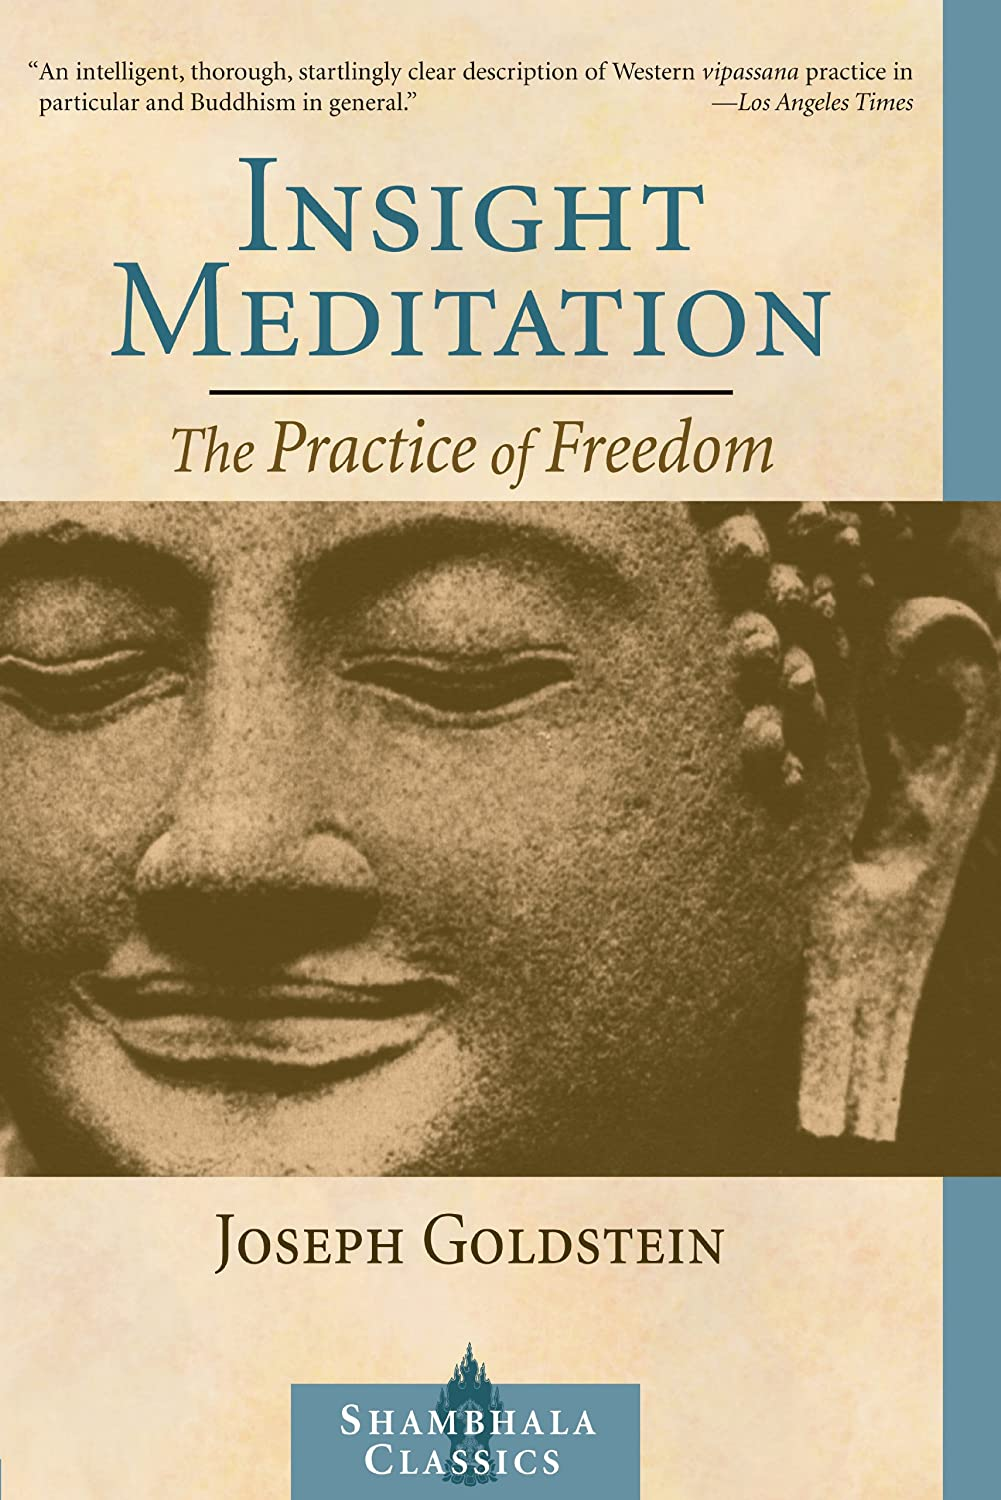 Insightful Meditation Helps With Negative Situations